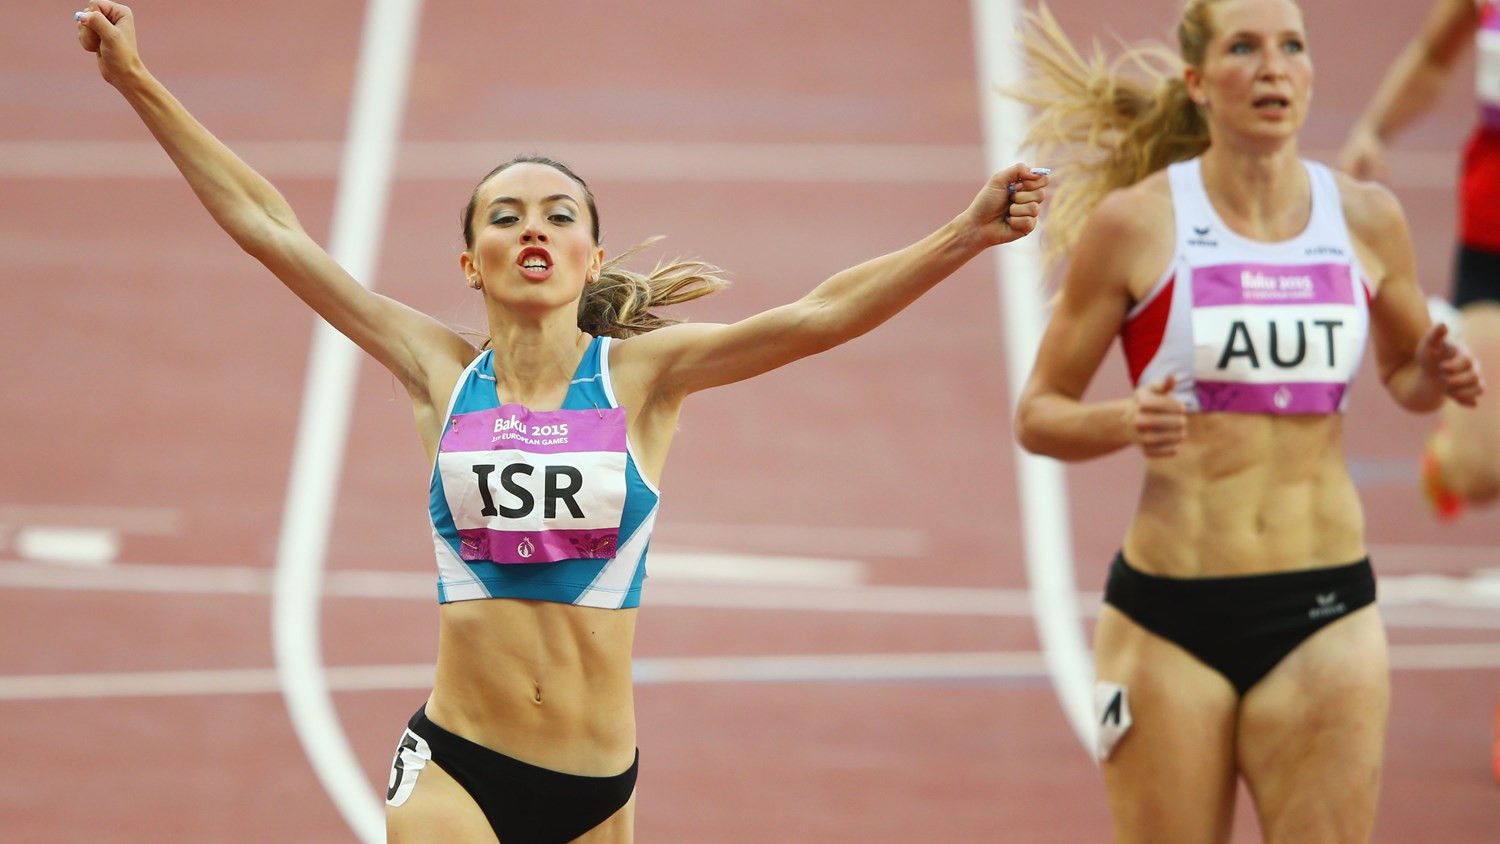 Athletics at the 2015 European Games in Baku was of a low standard featuring countries ranked in the third tier ©Getty Images